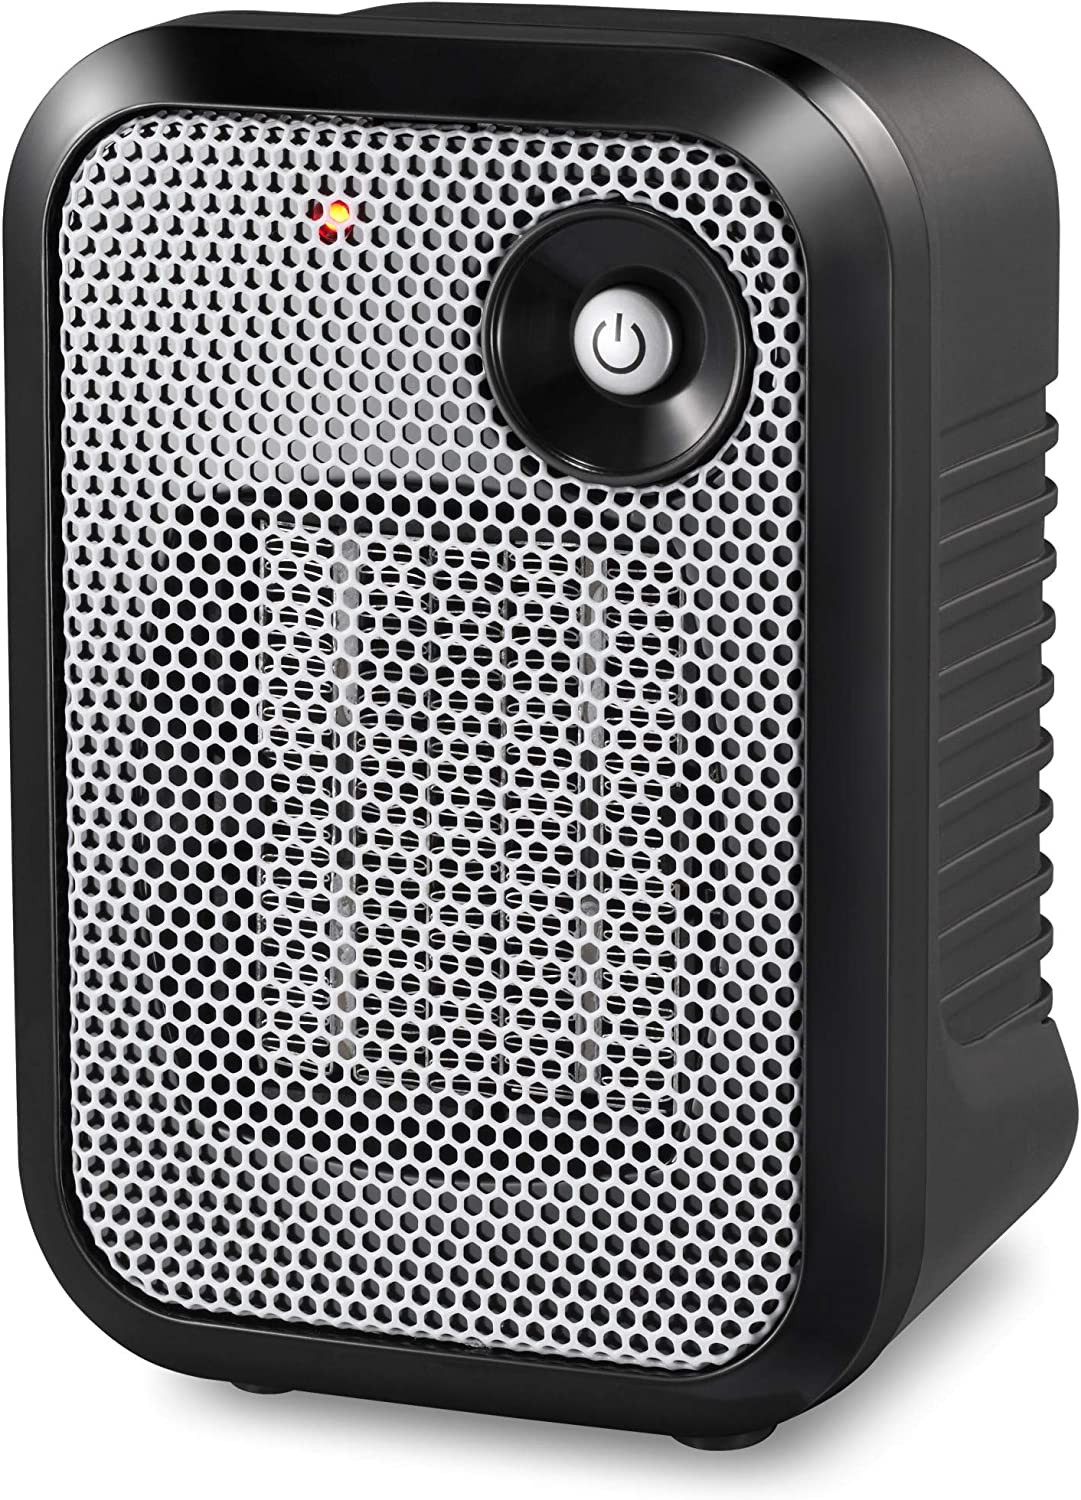 HOME_CHOICE 500 Watt Mini Personal Ceramic Space Heater Electric Portable Heater Quiet for Home Dorm Office Desktop with Safety Power Switch (Silver, 1)